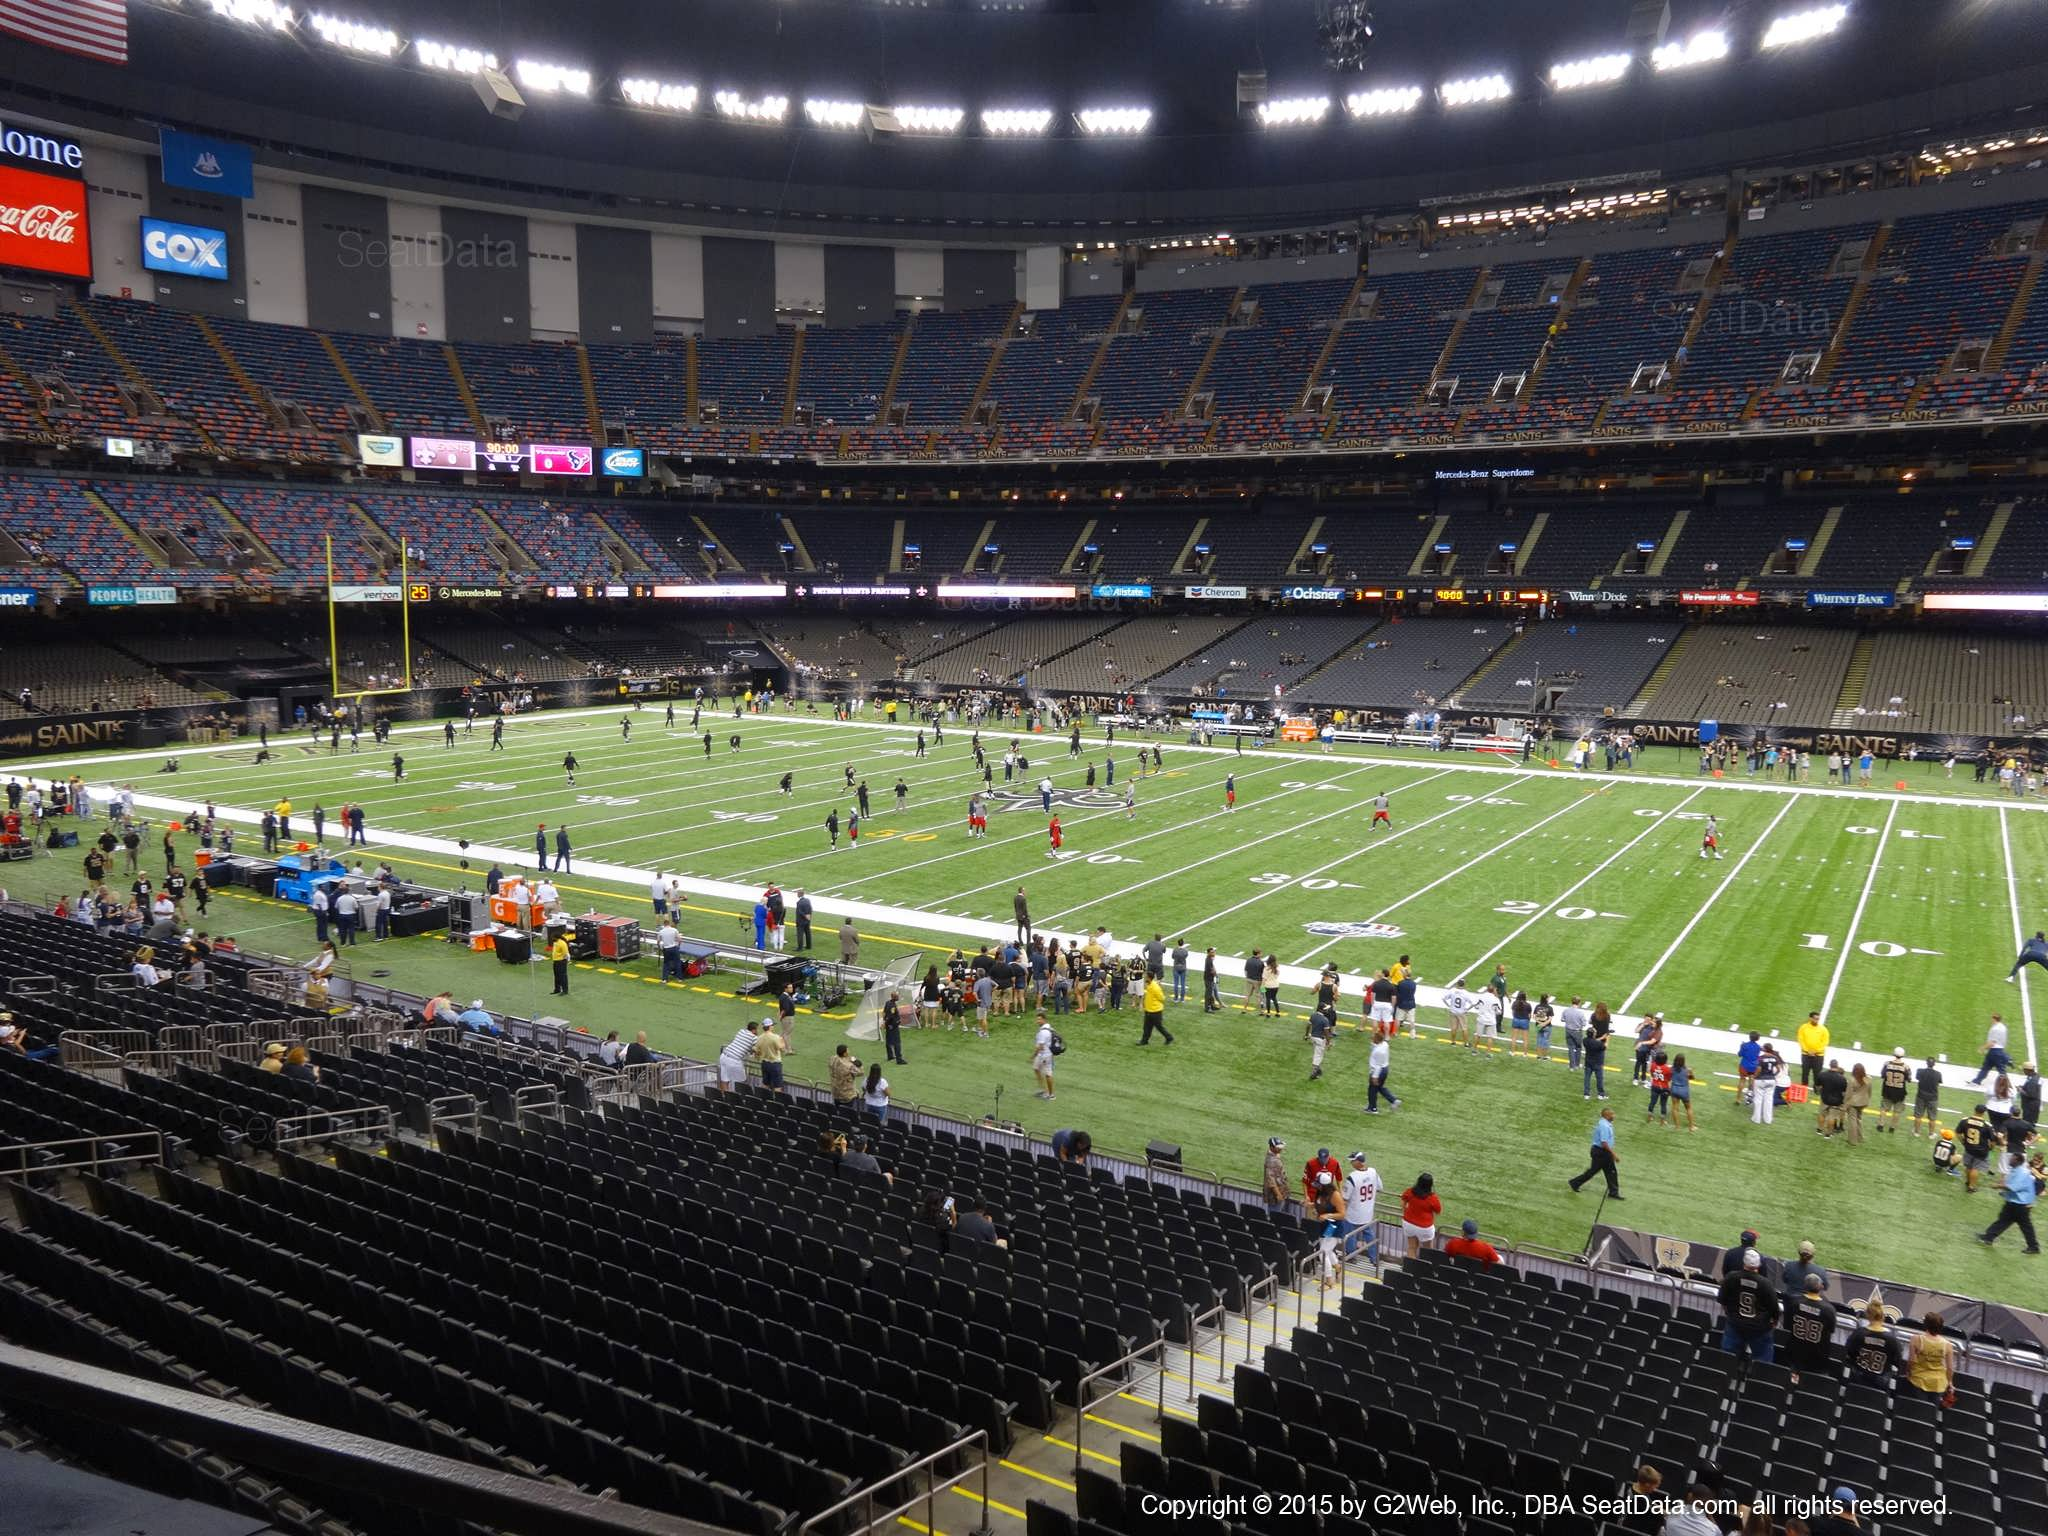 Seat view from section 215 at the Mercedes-Benz Superdome, home of the New Orleans Saints